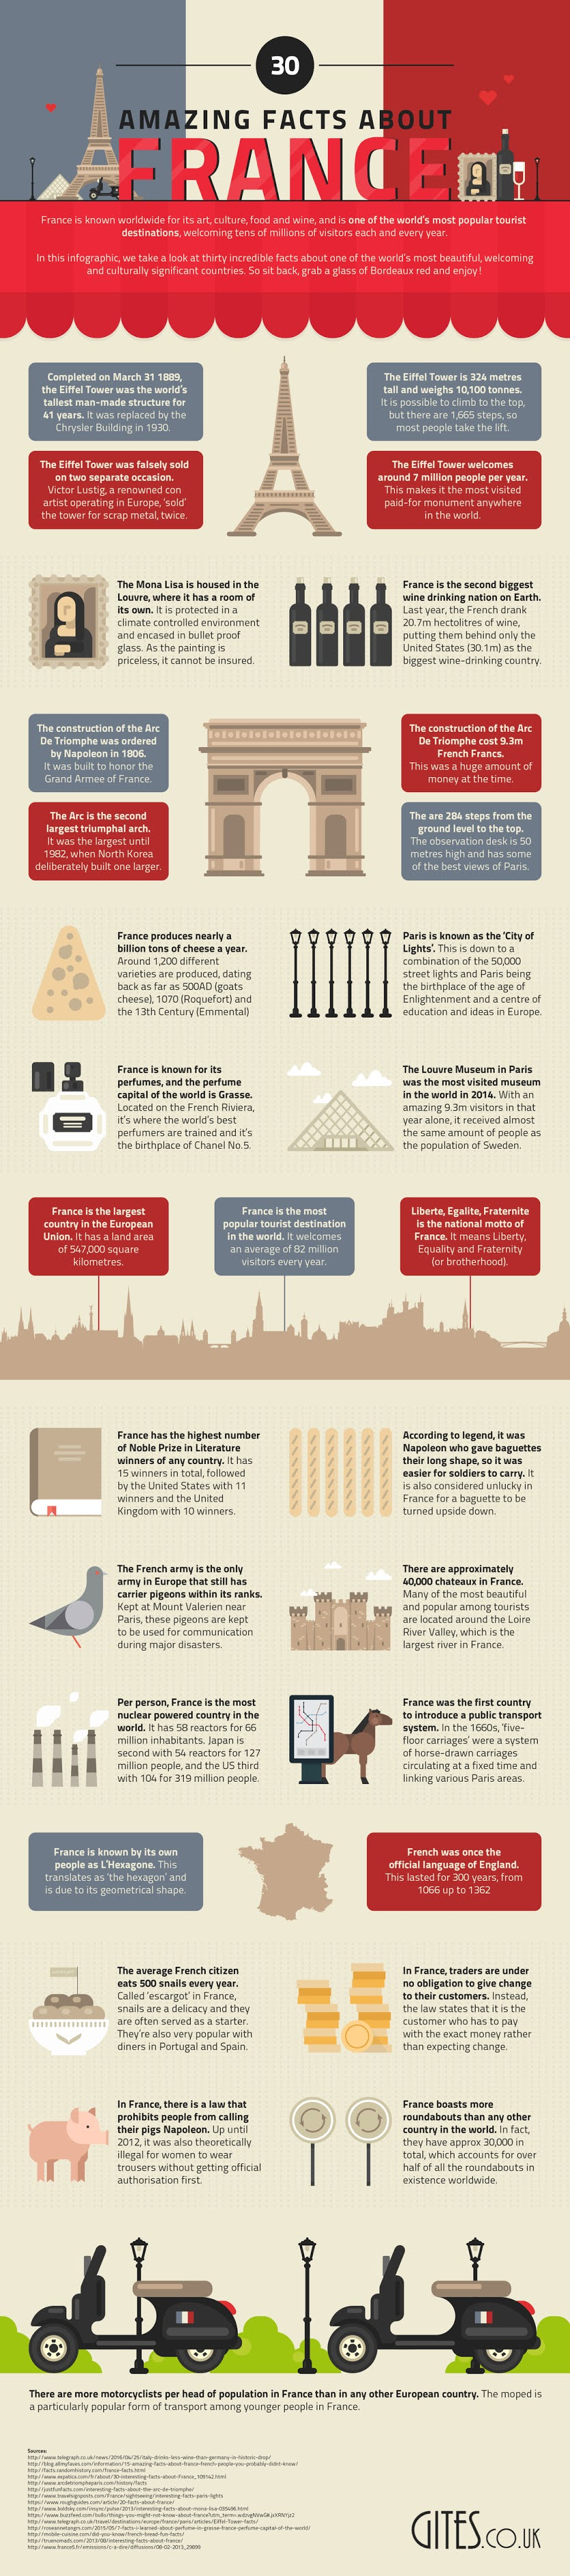 30 Amazing Facts About France #infographic #France #Facts #News